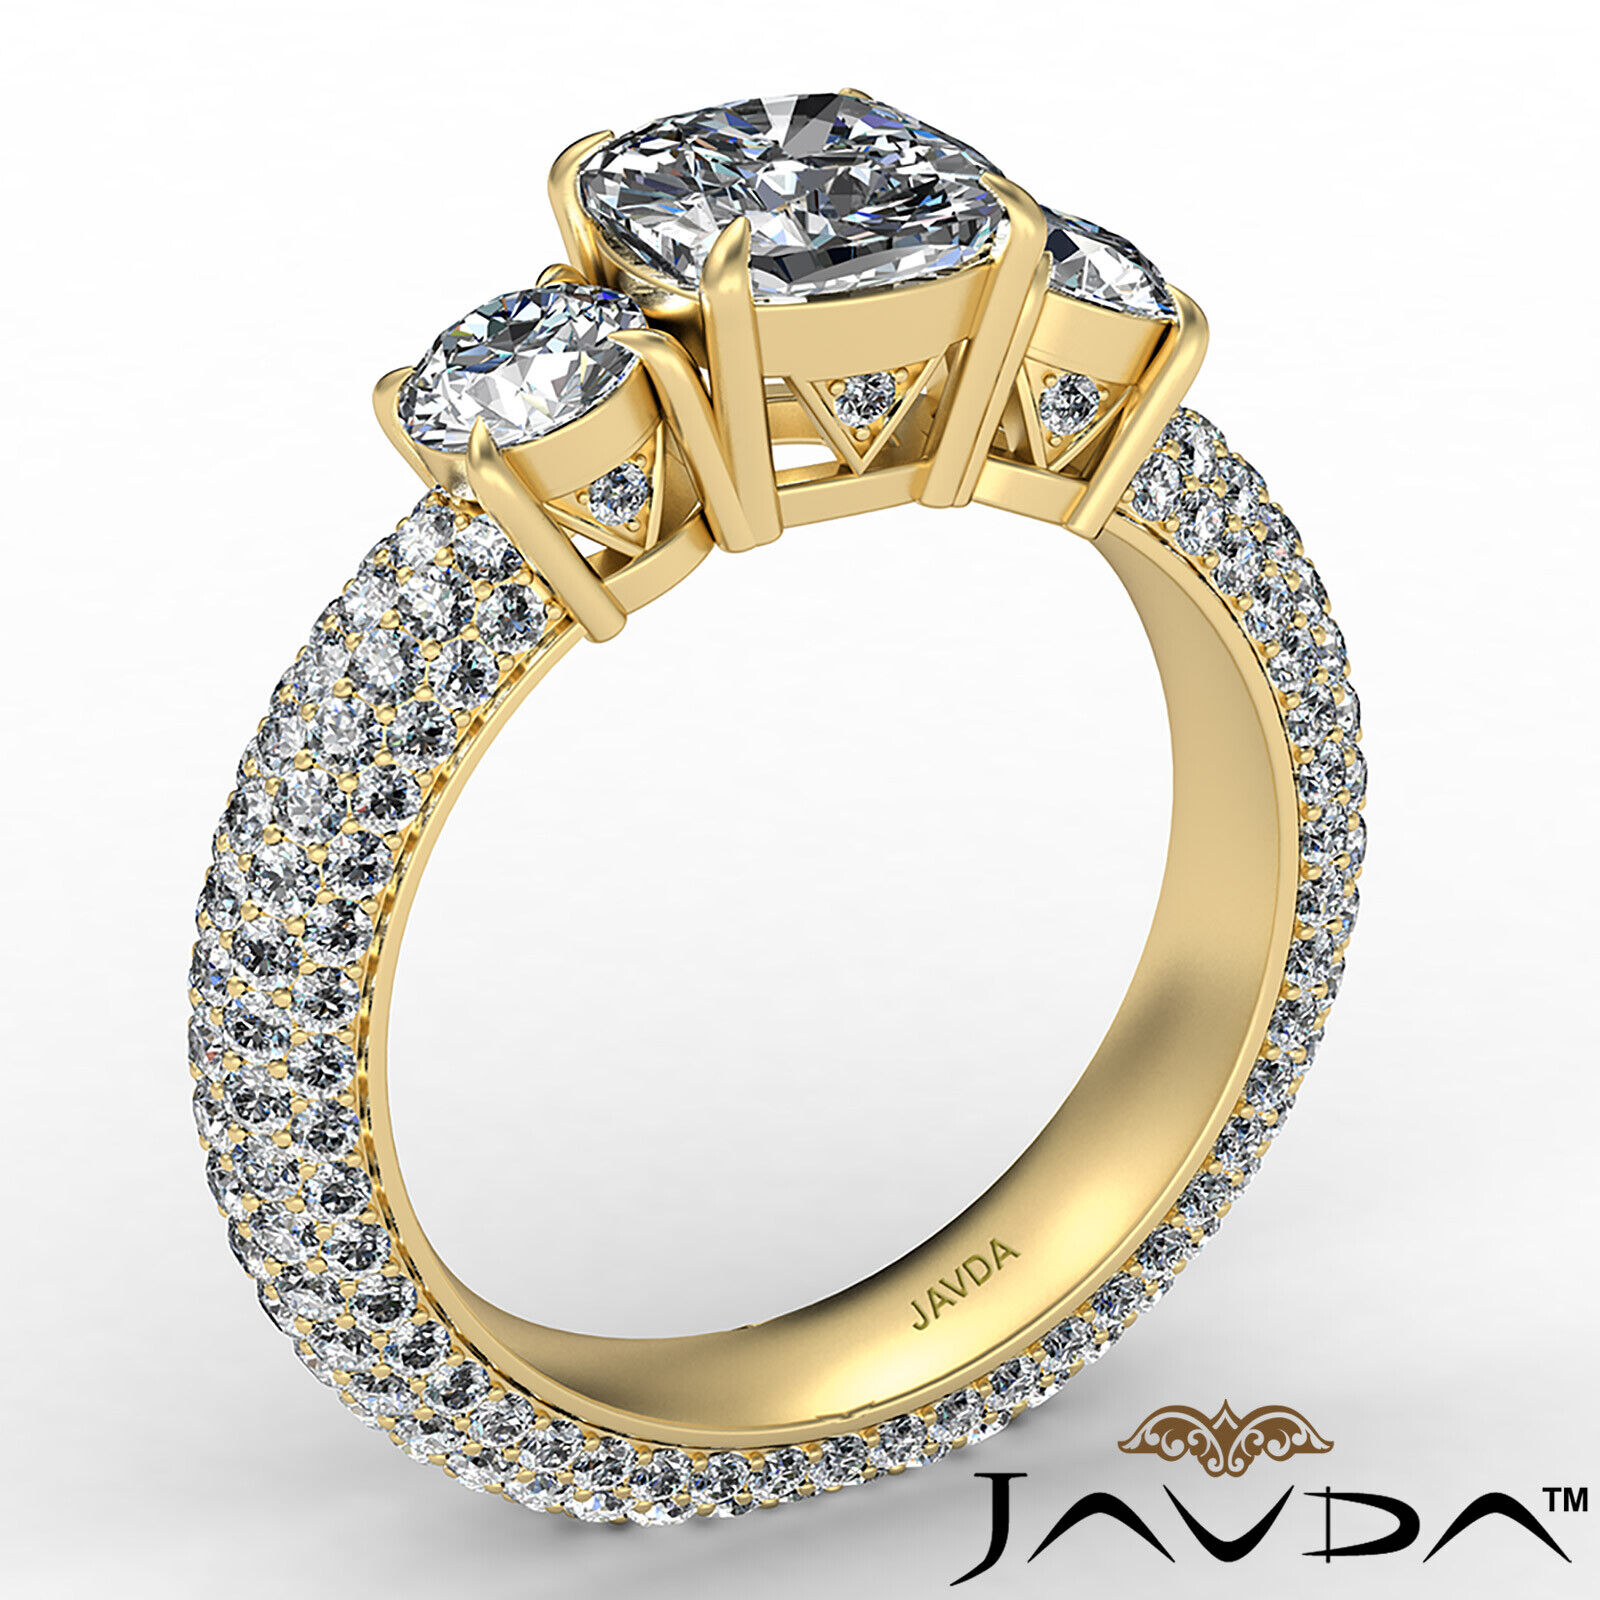 Cushion Diamond Engagement Ring Certified by GIA, G Color & SI1 clarity 3.44 ctw 4